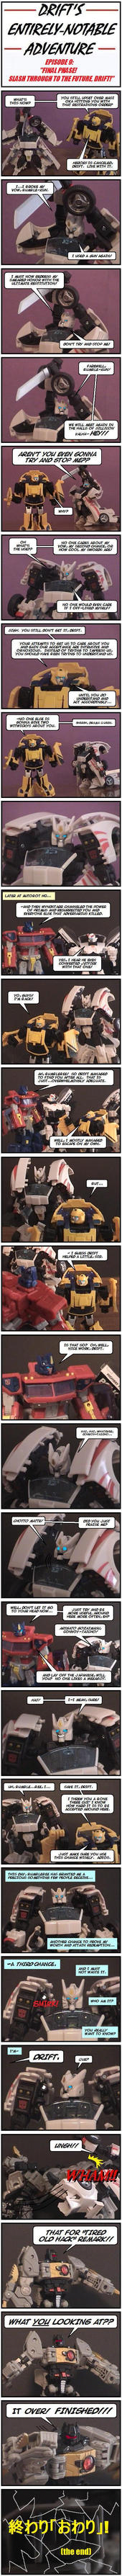 Drift's Notable Adventure- P9 by MikePriest83